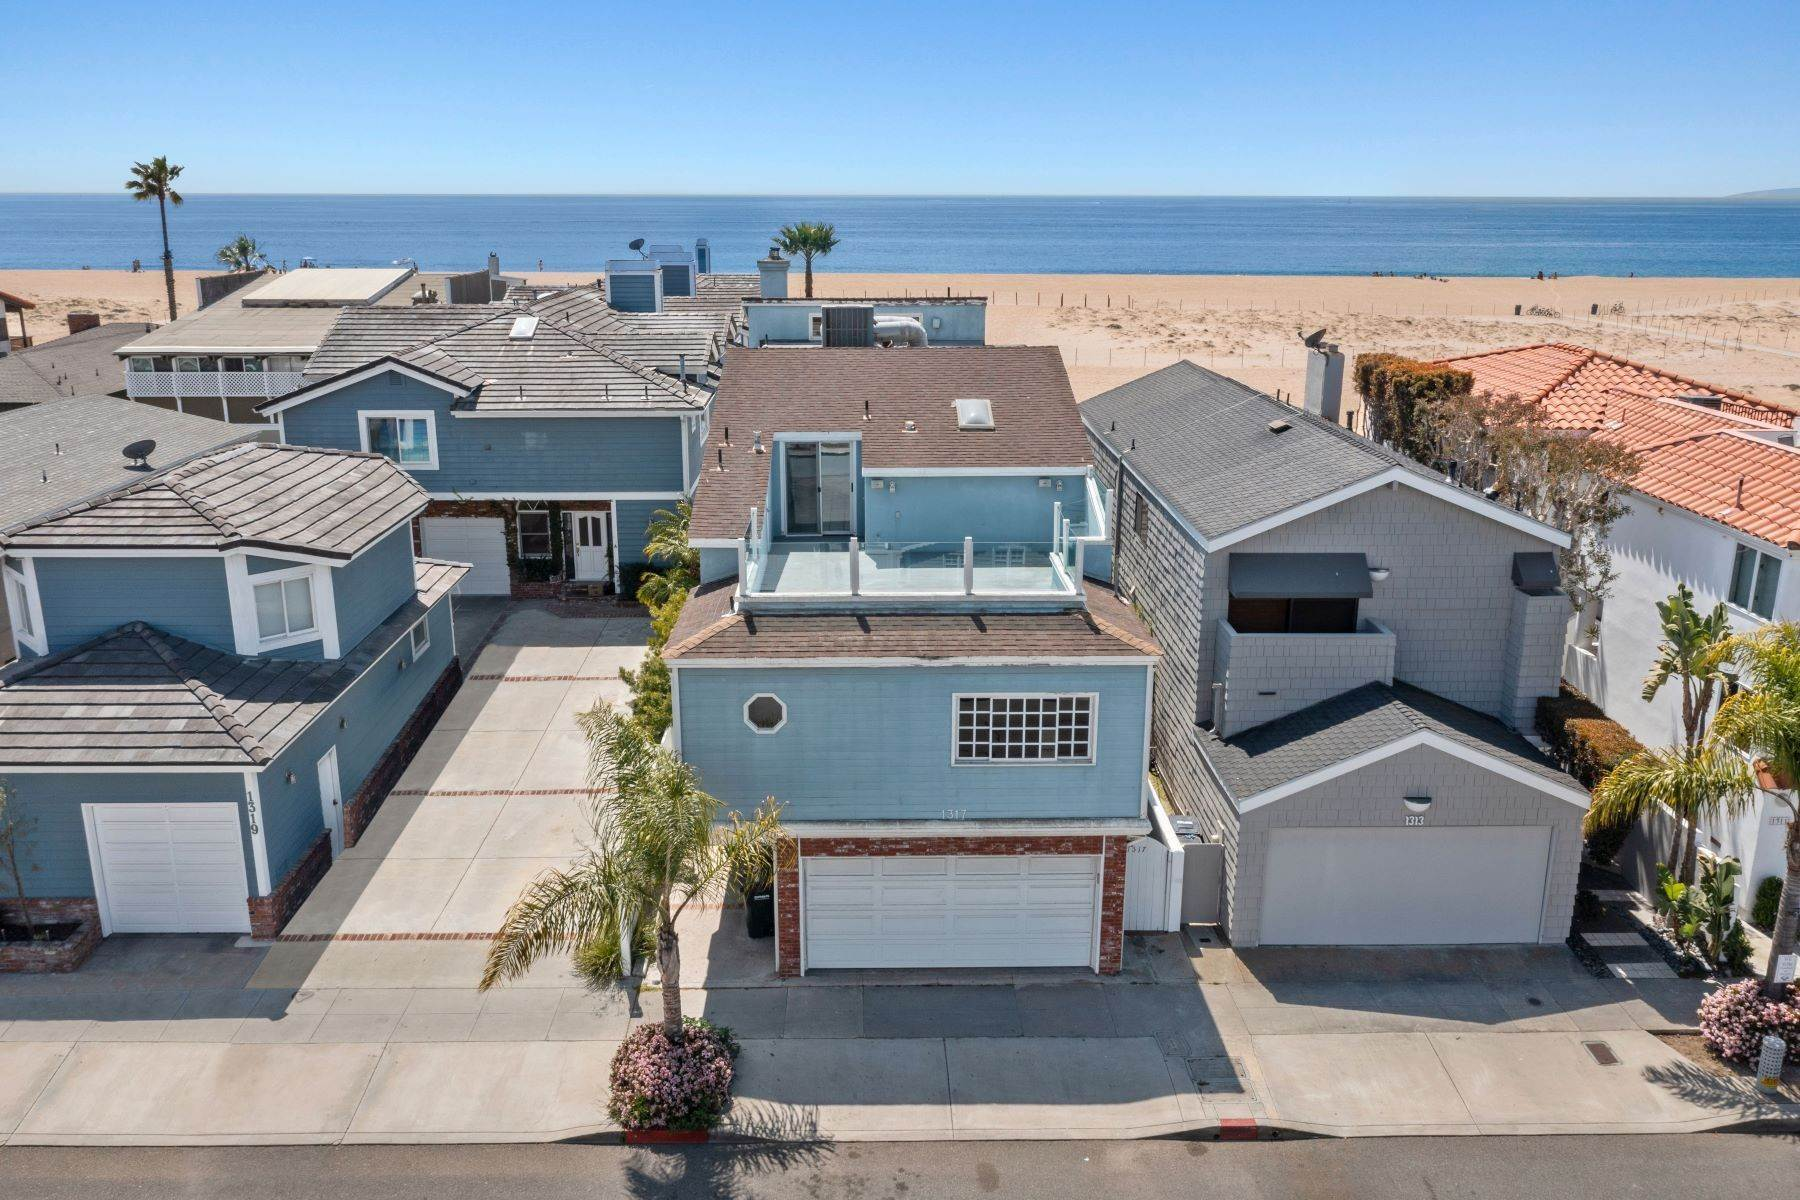 Single Family Homes for Sale at 1317 East Balboa Boulevard, Newport Beach, CA 92661 1317 East Balboa Boulevard Newport Beach, California 92661 United States